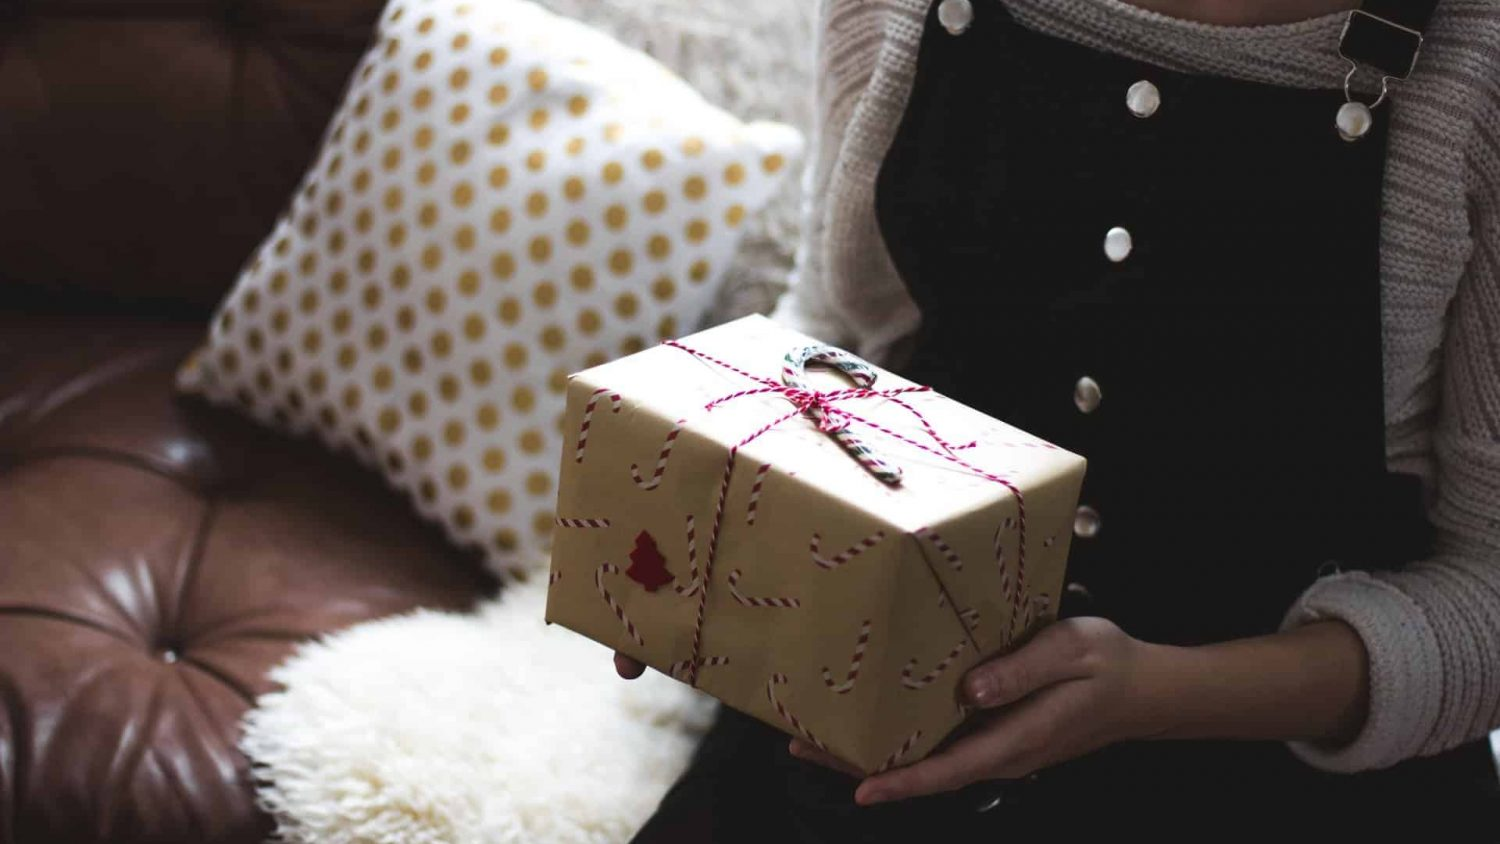 40 Best Gifts for Girlfriend 2021 – Show Your Romantic Side & Express Your Love with These Lovely Gifts